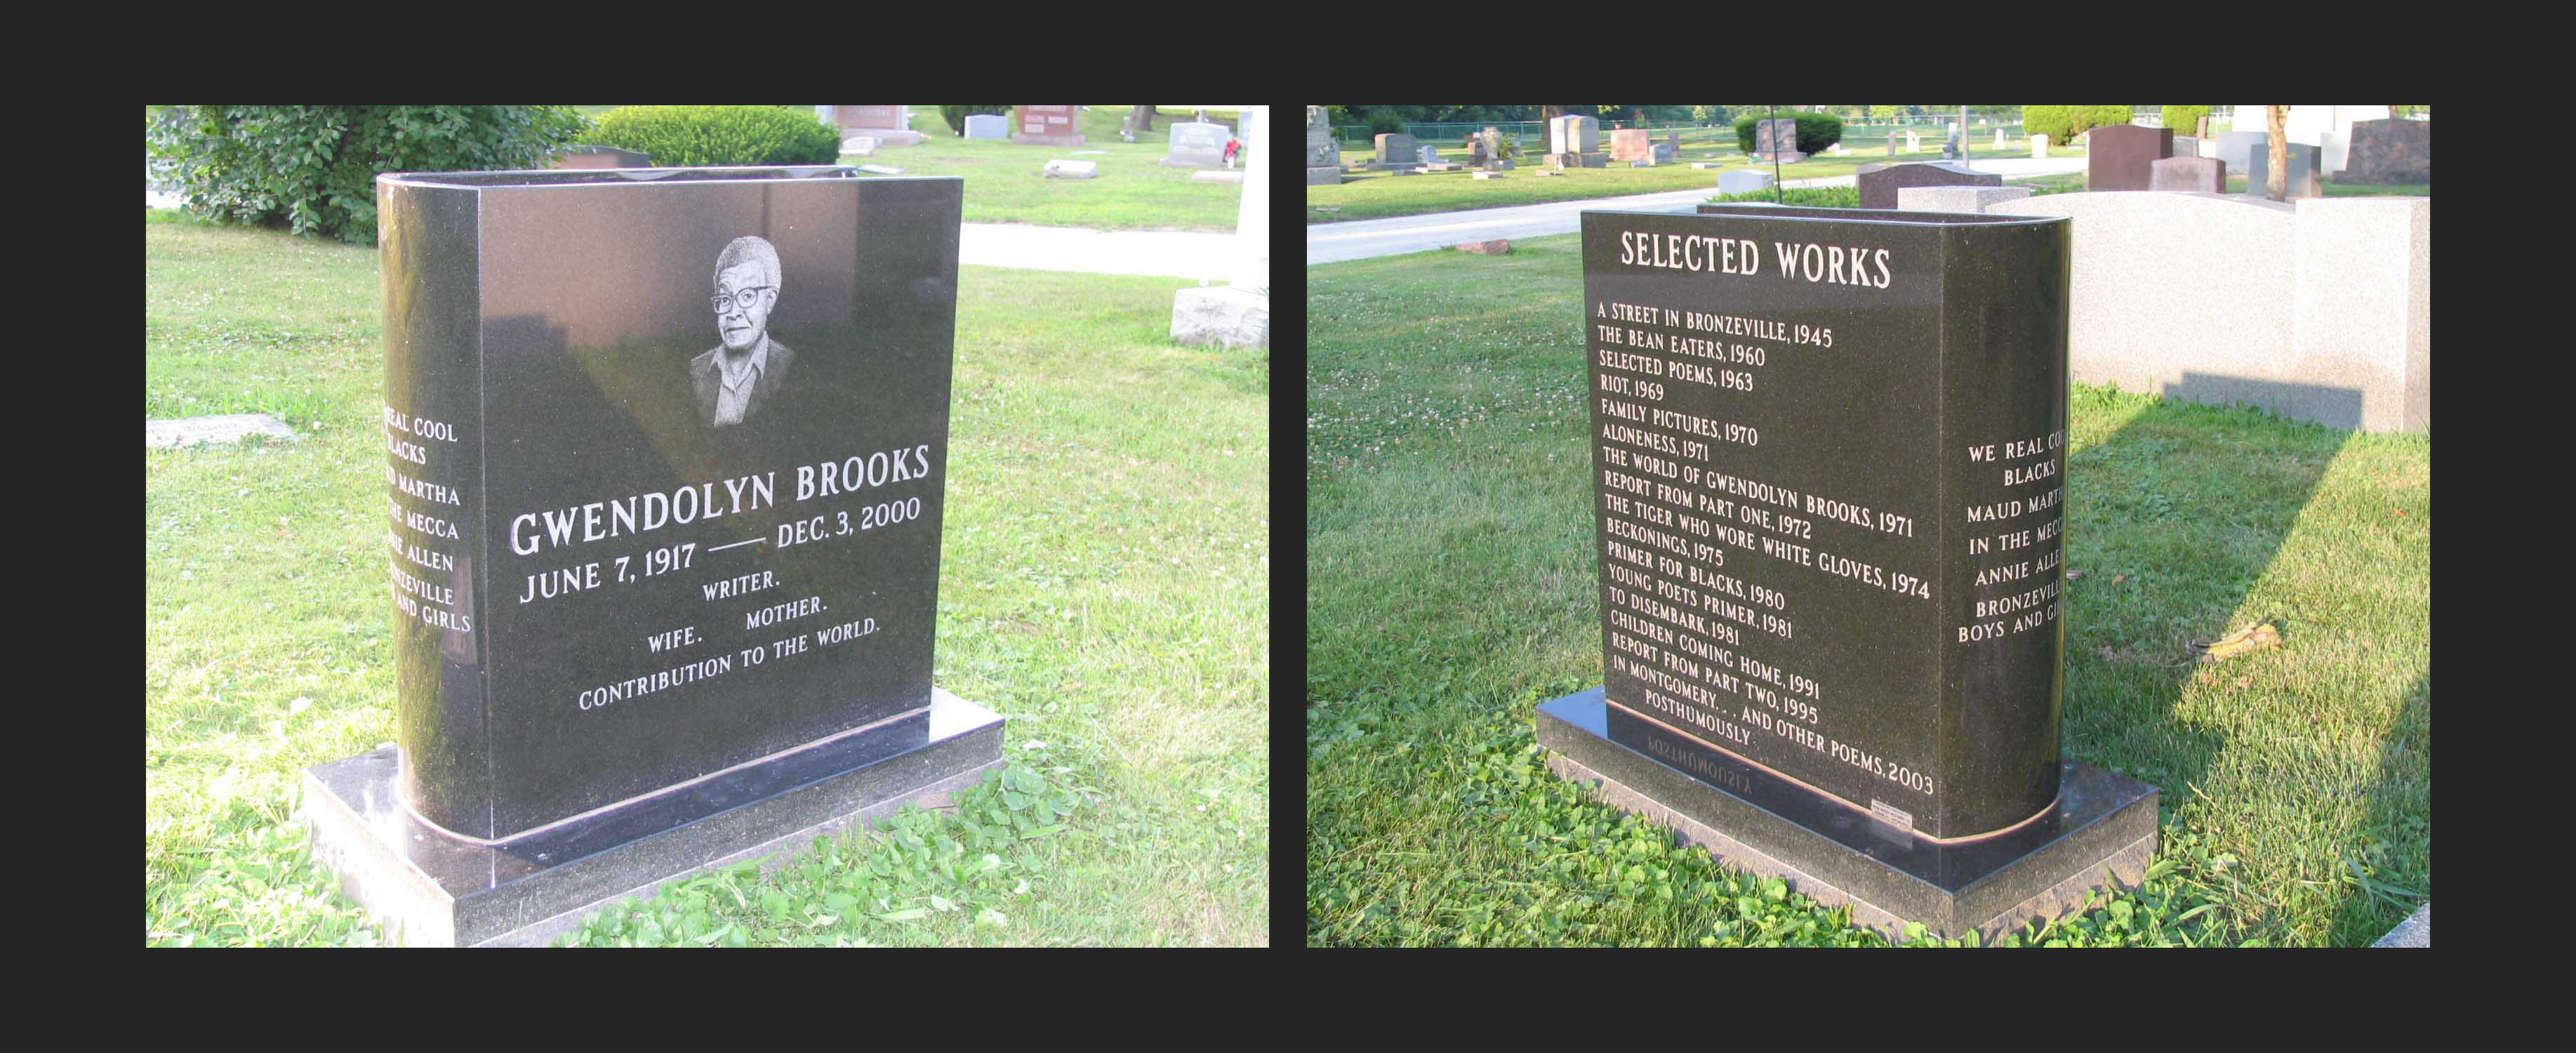 The headstone at Gwendolyn Brooks' grave